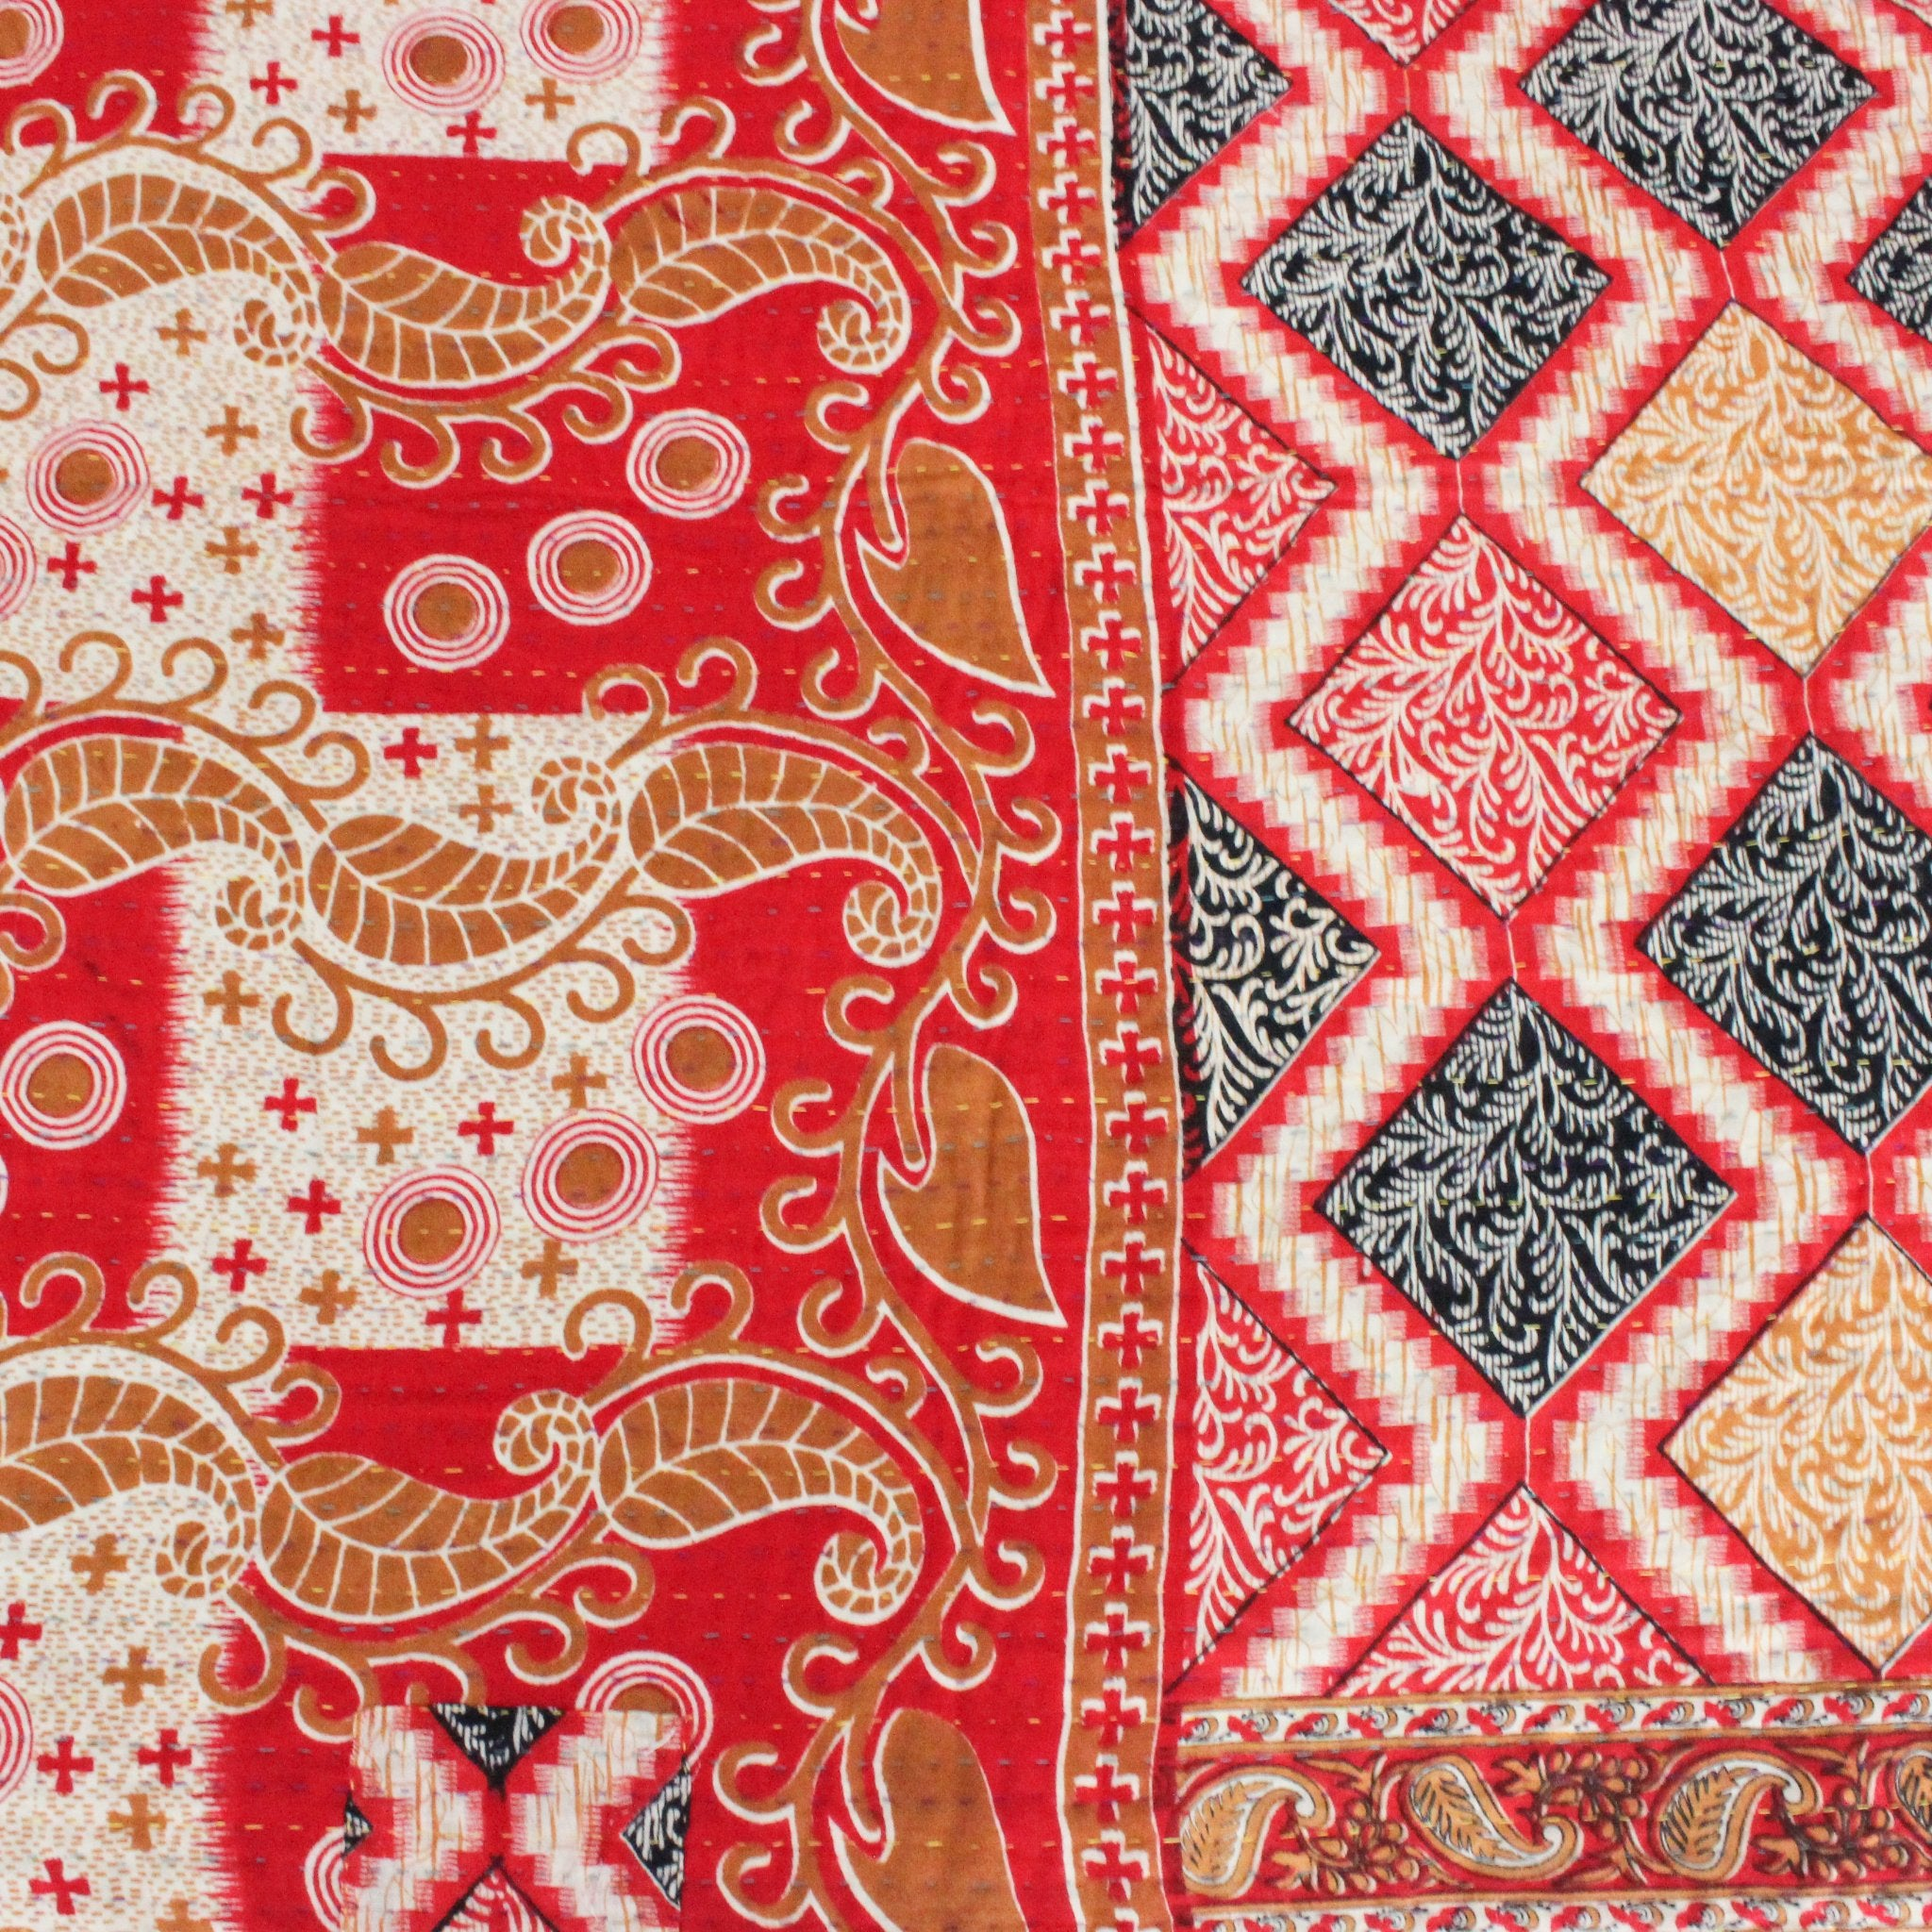 Vintage Kantha Quilt red pattern detail - Anokha Collection